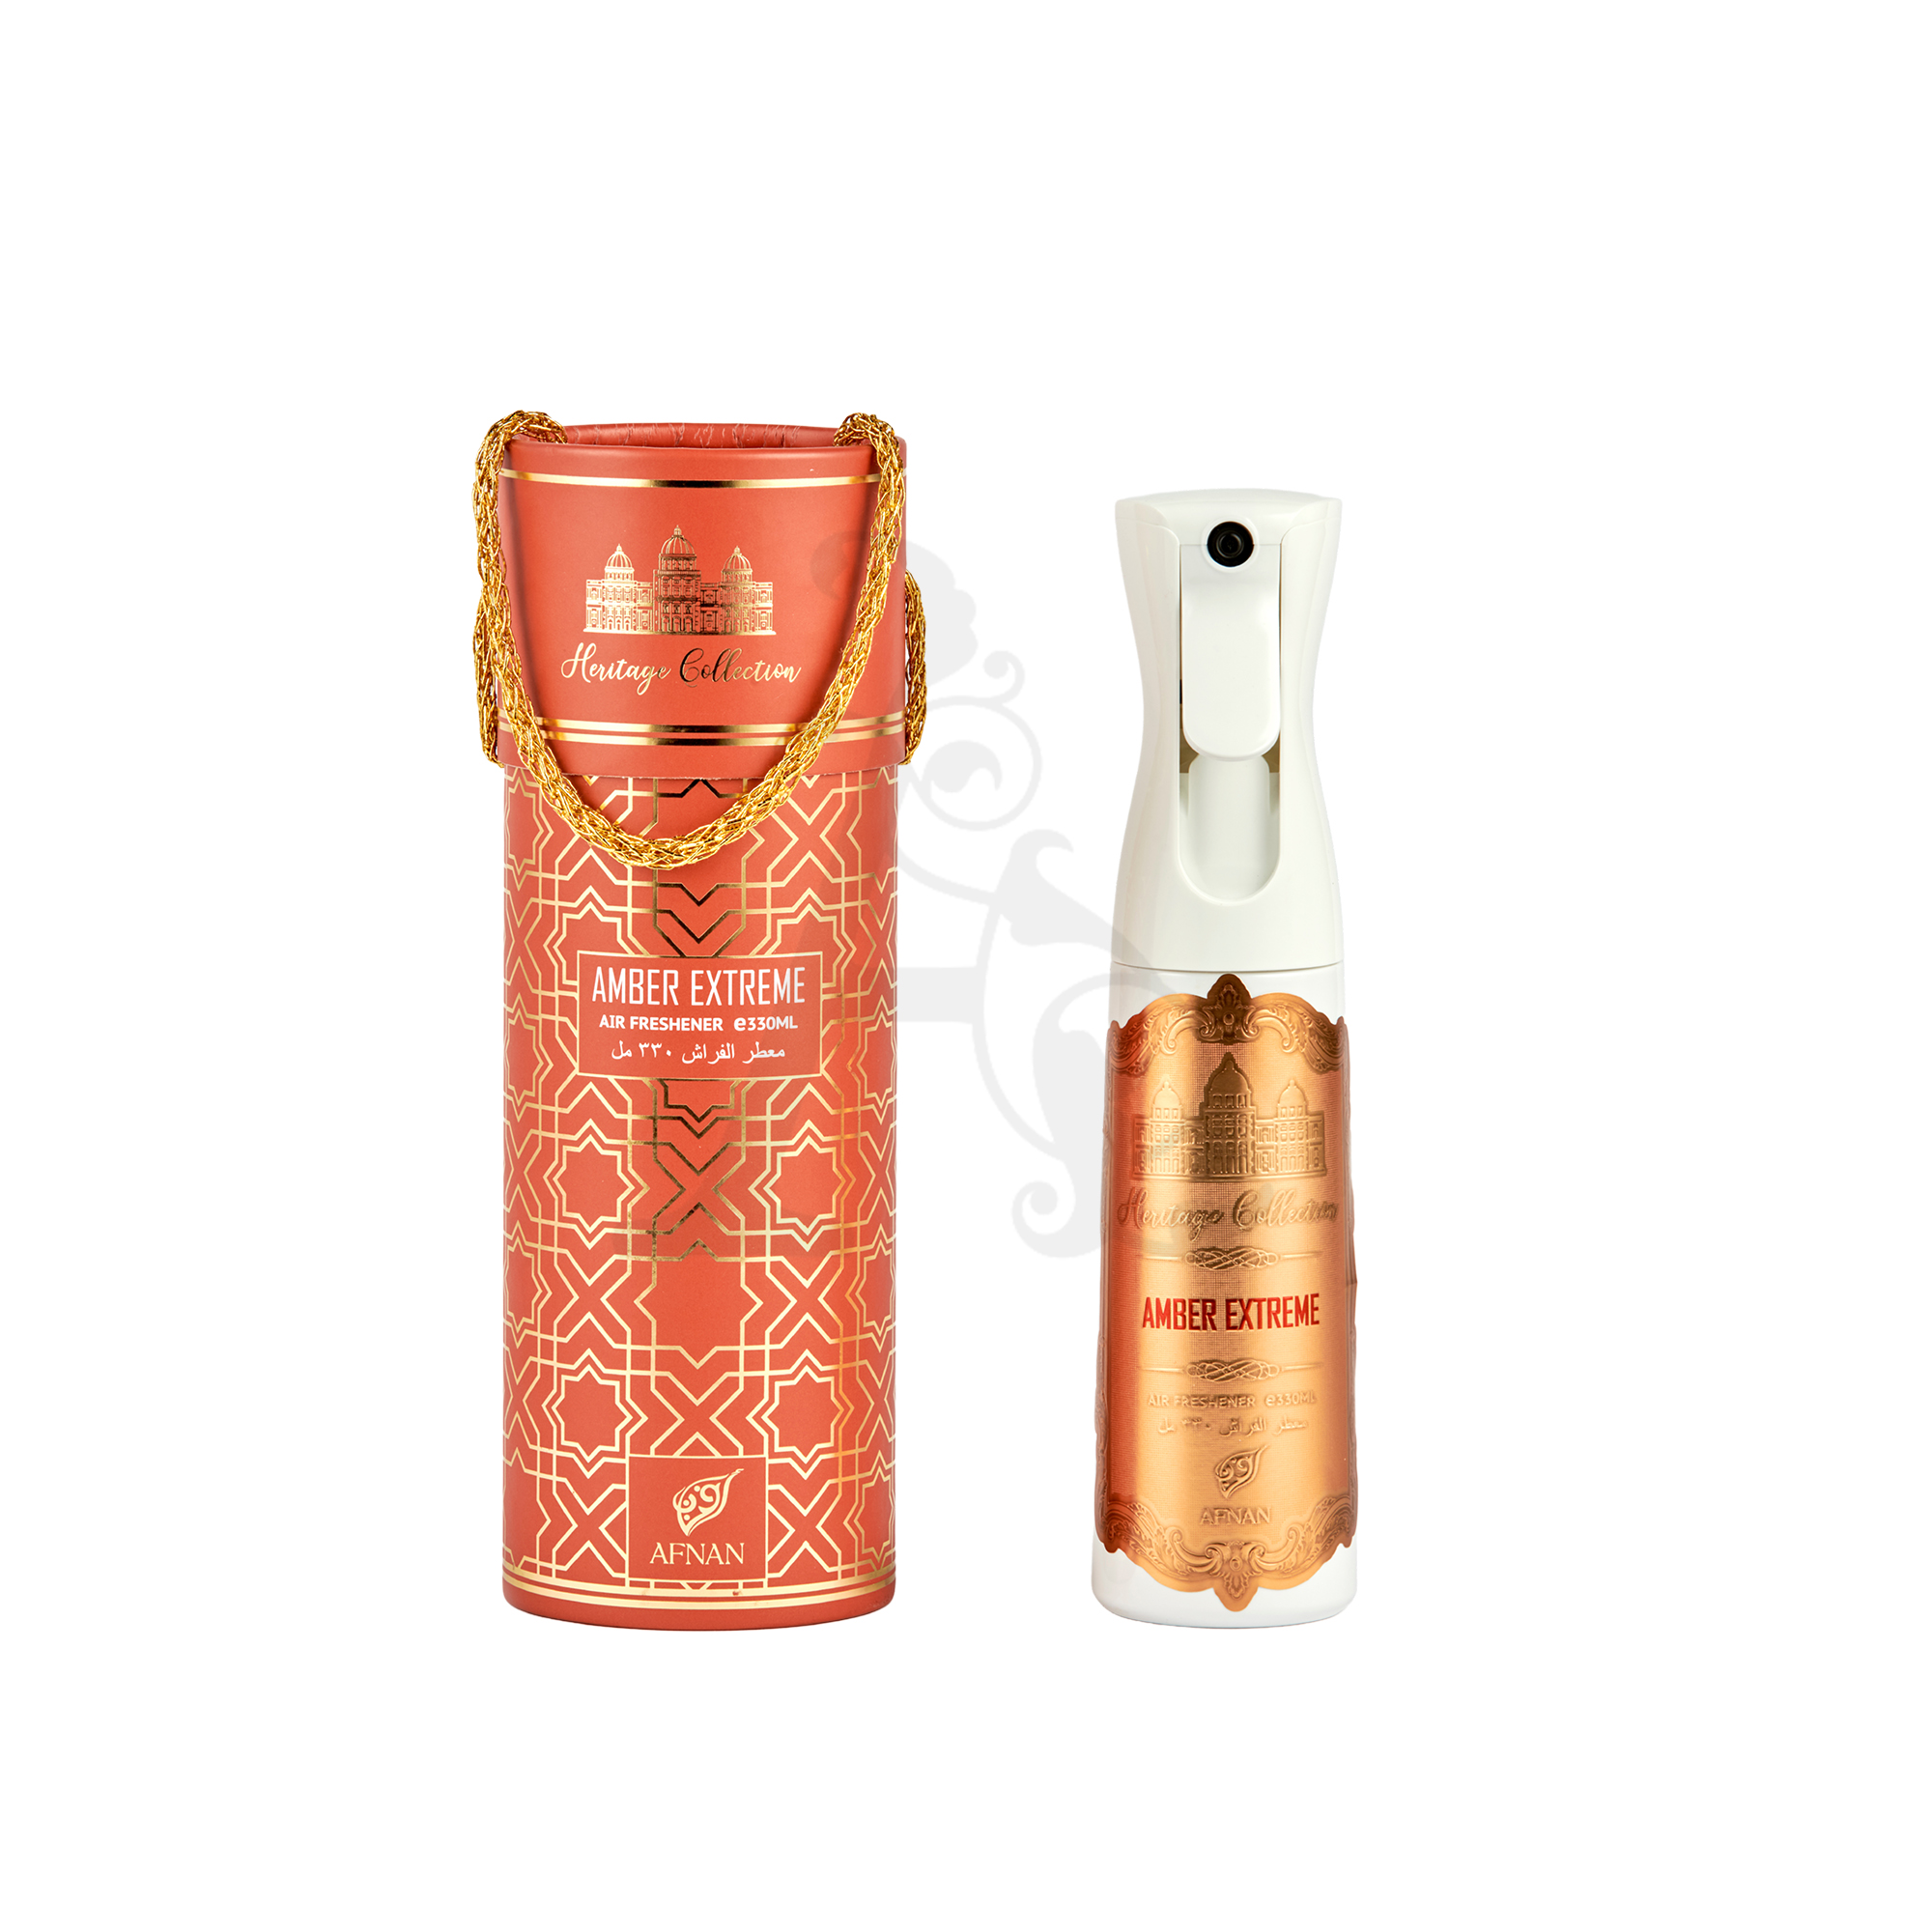 Buy Air Freshener Heritage Collection Amber Extreme 330ML